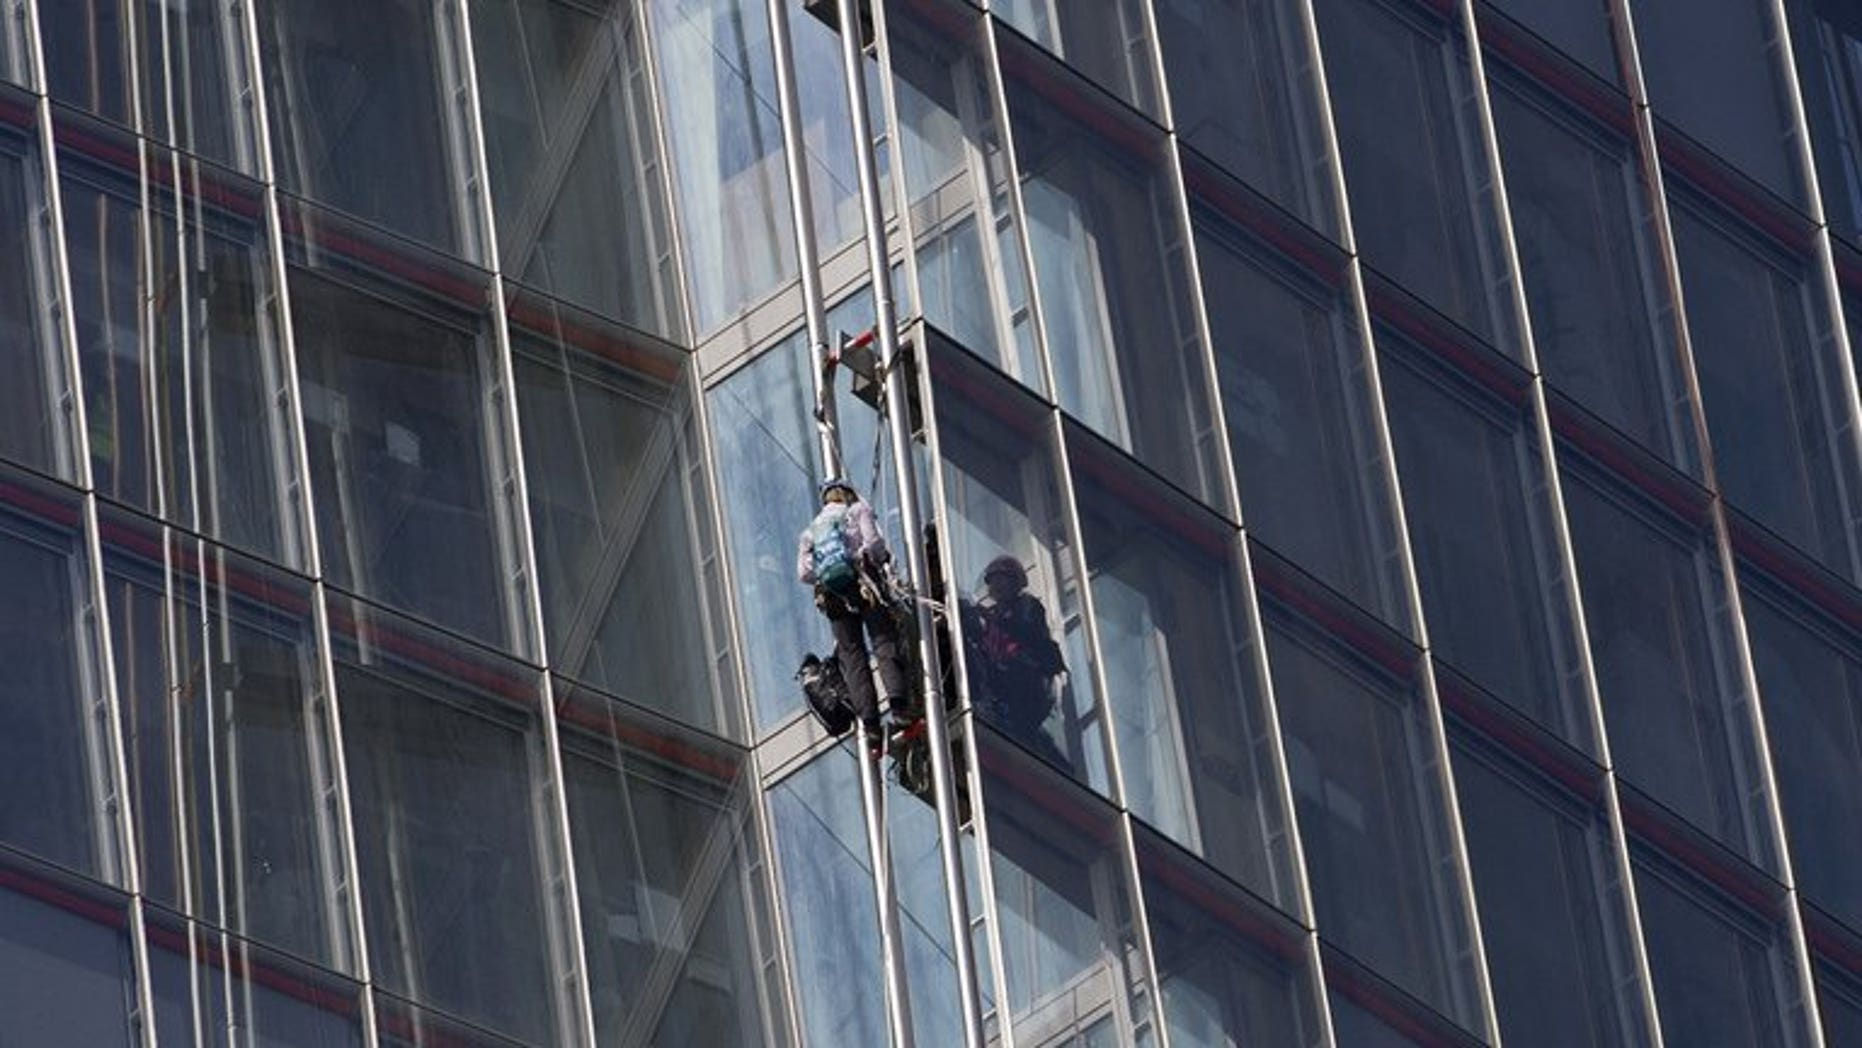 """Greenpeace protesters climb """"The Shard"""" skyscraper in central London on July 11, 2013 during a demonstration against oil exploration in the Arctic."""